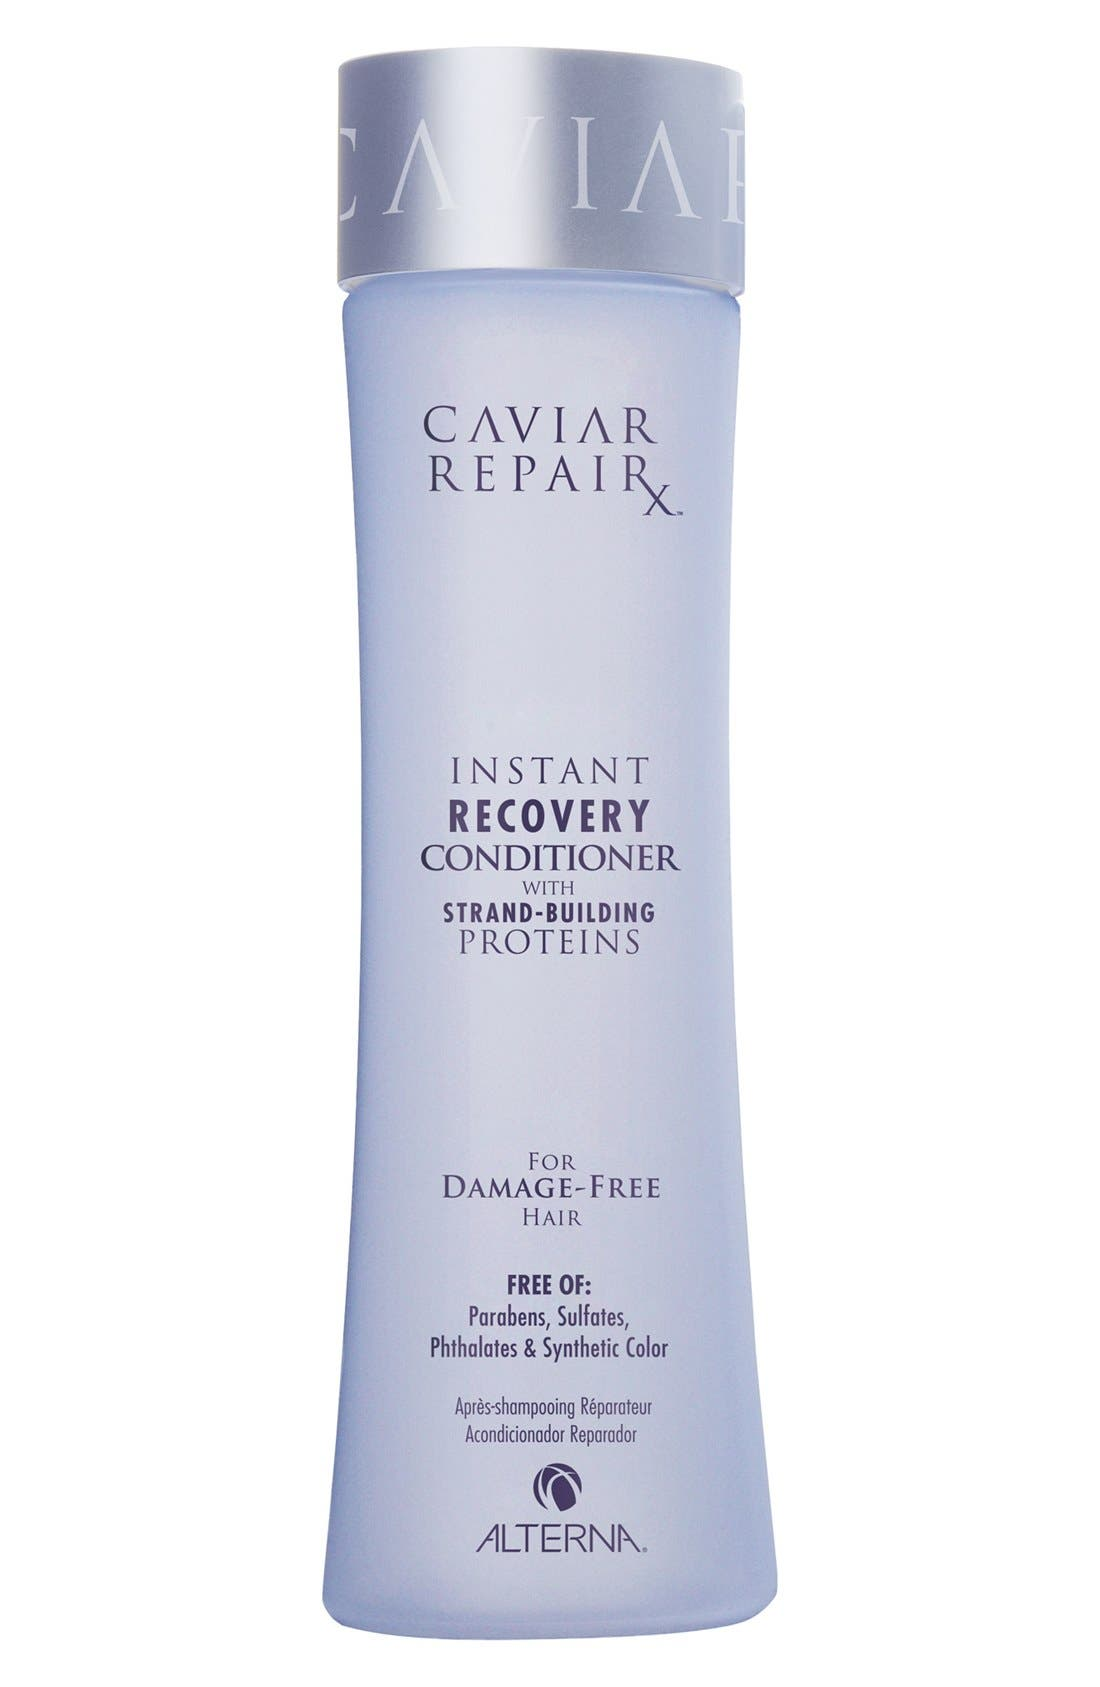 Caviar Repair Rx Instant Recovery Conditioner,                         Main,                         color, 000